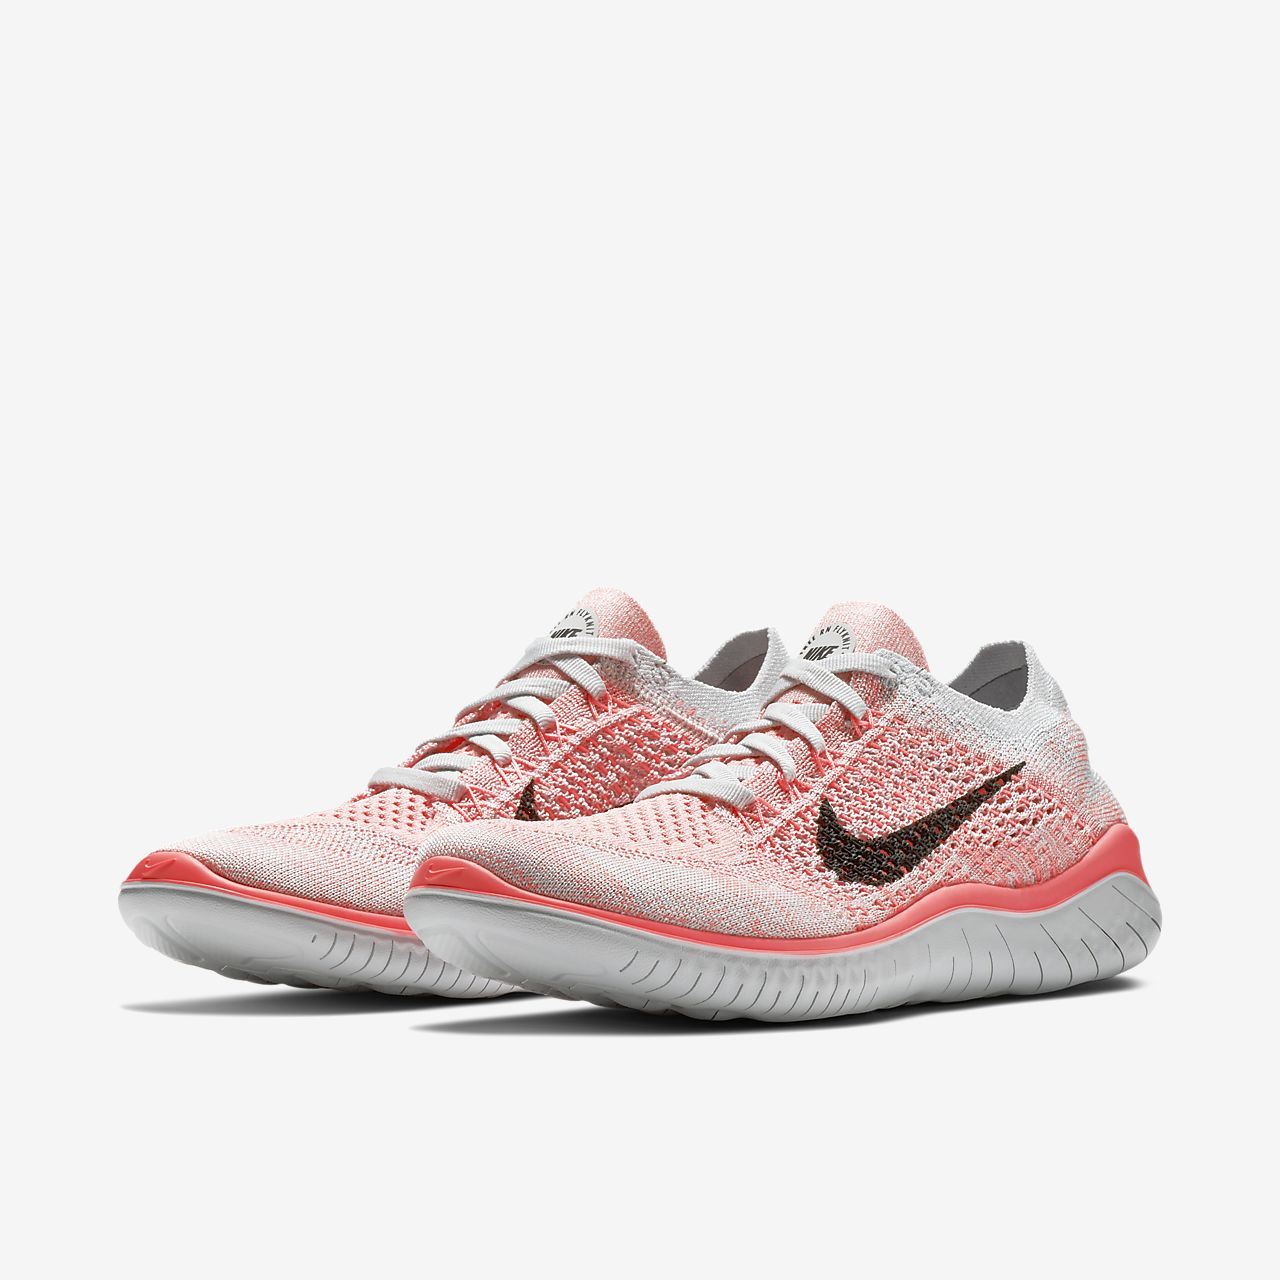 Nike Free RN 2018 - Chaussures running pour Femme - Orange